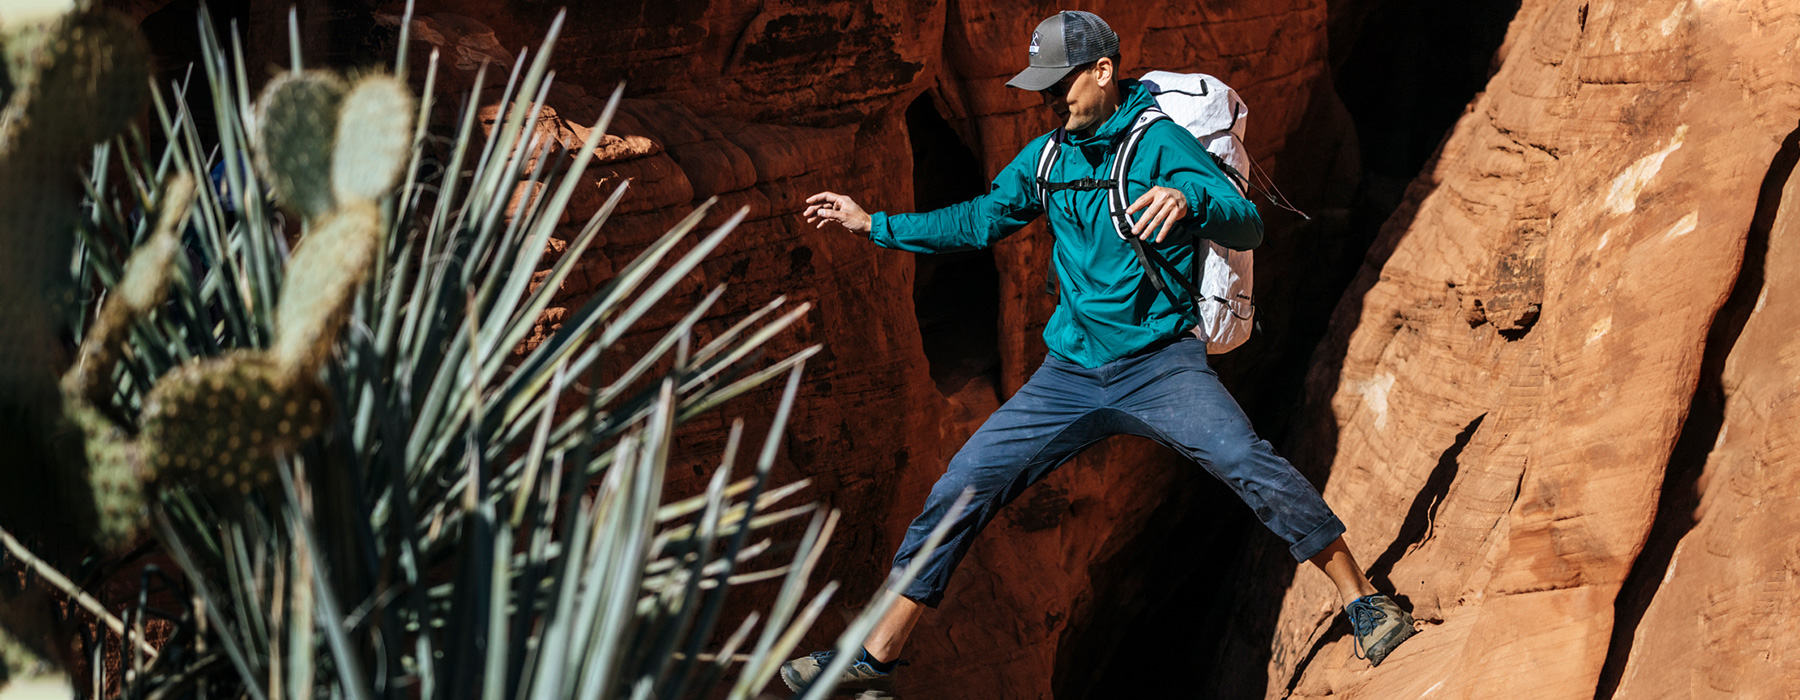 Men's Kor Preshell™ Hoody in action, climber straddling between rocks